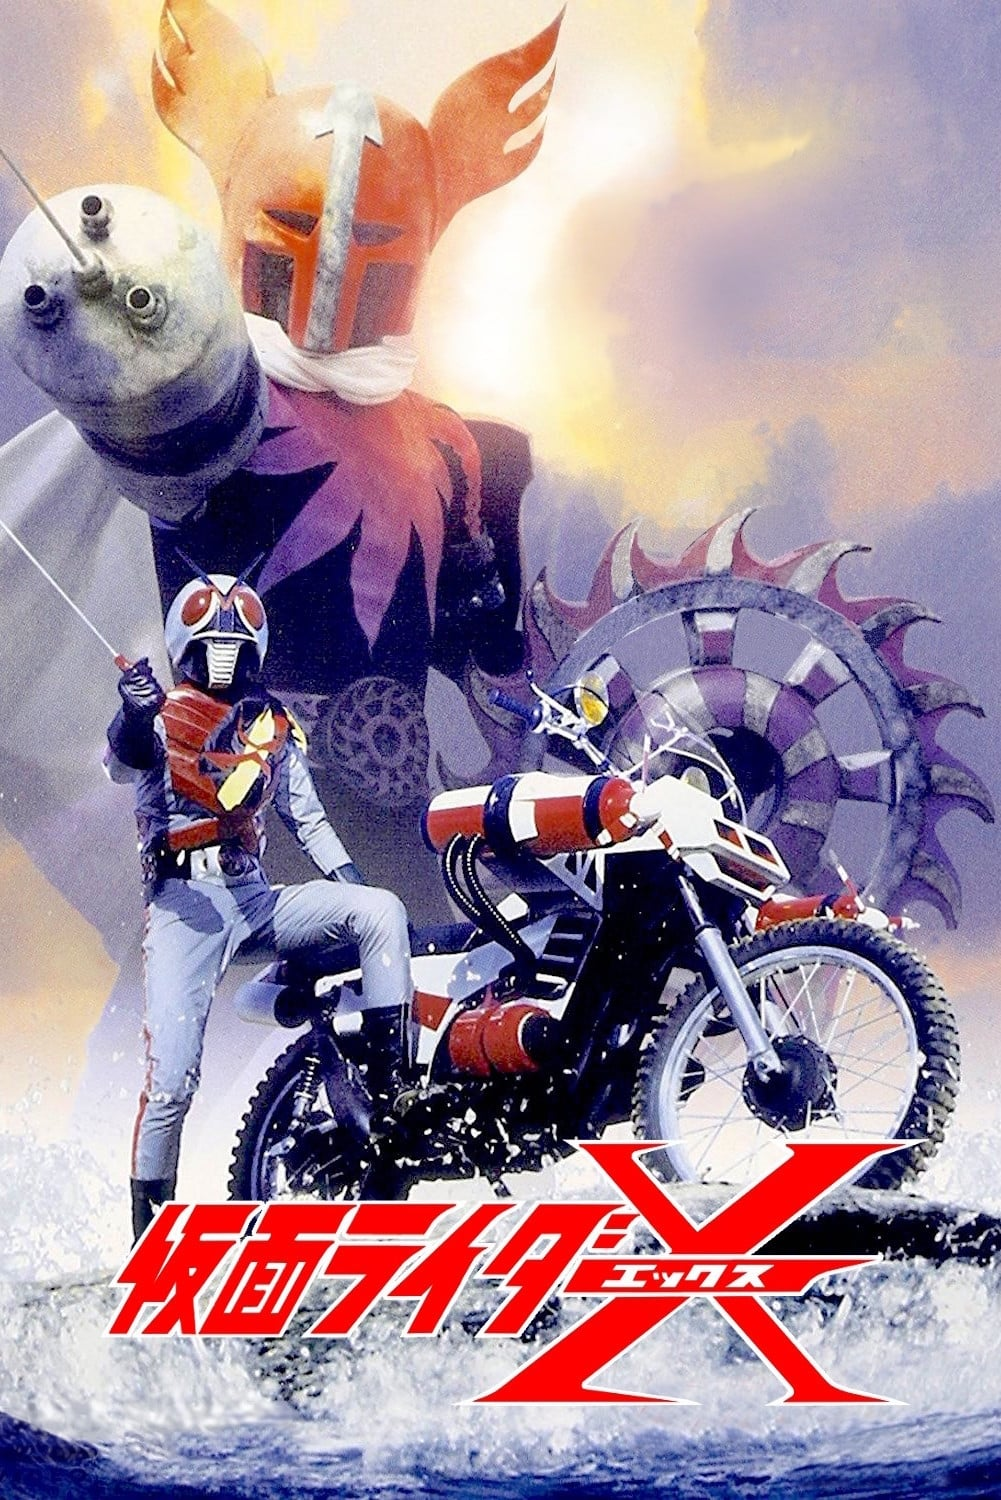 Kamen Rider - Season 21 Episode 35 : Dreams, Brother, Birth's Secret Season 3